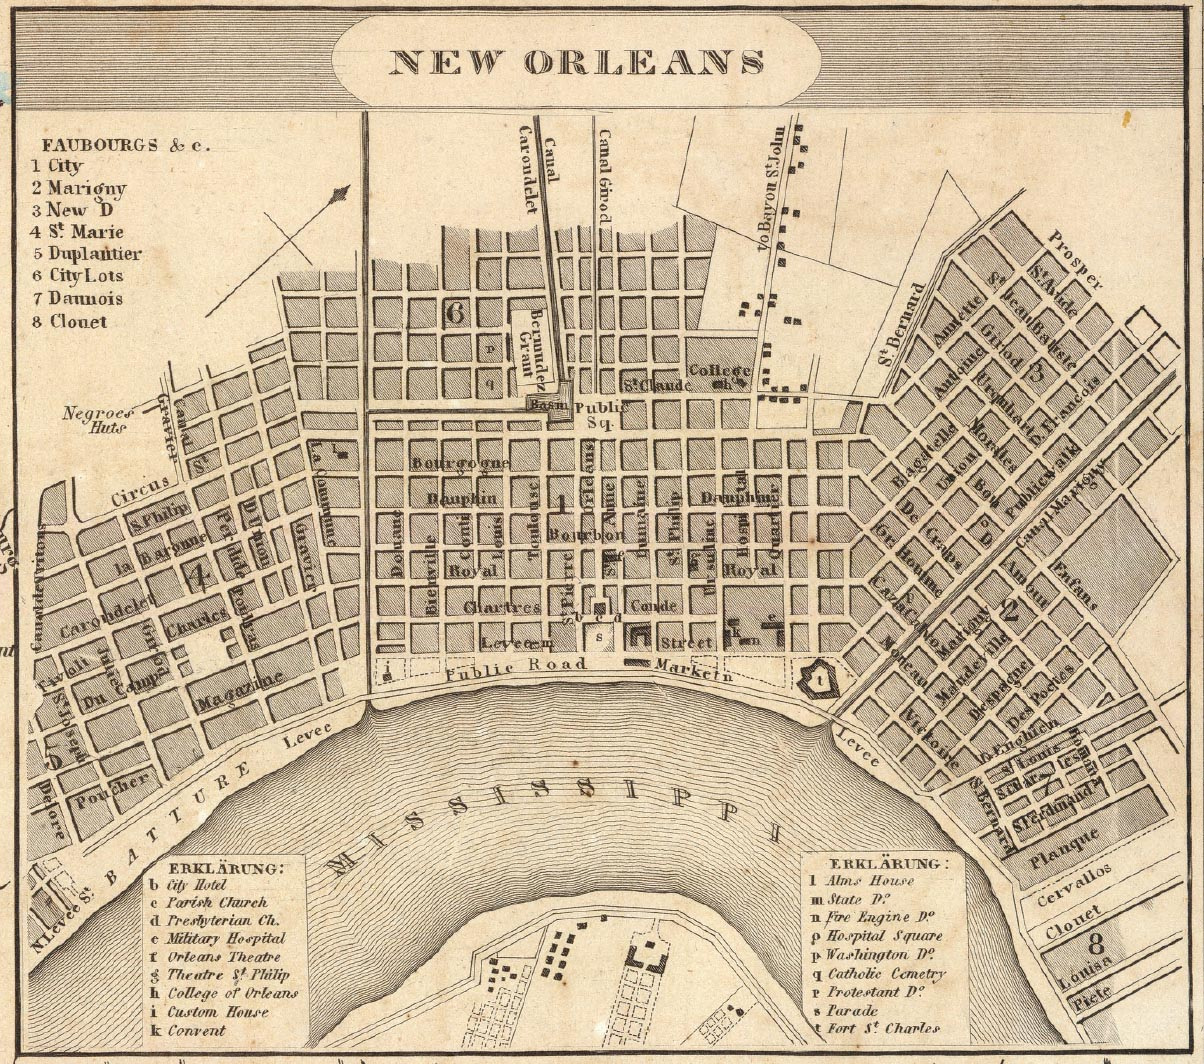 48th OVVI - Cyrus Hussey Diary - New Orleans City Map New Orleans on